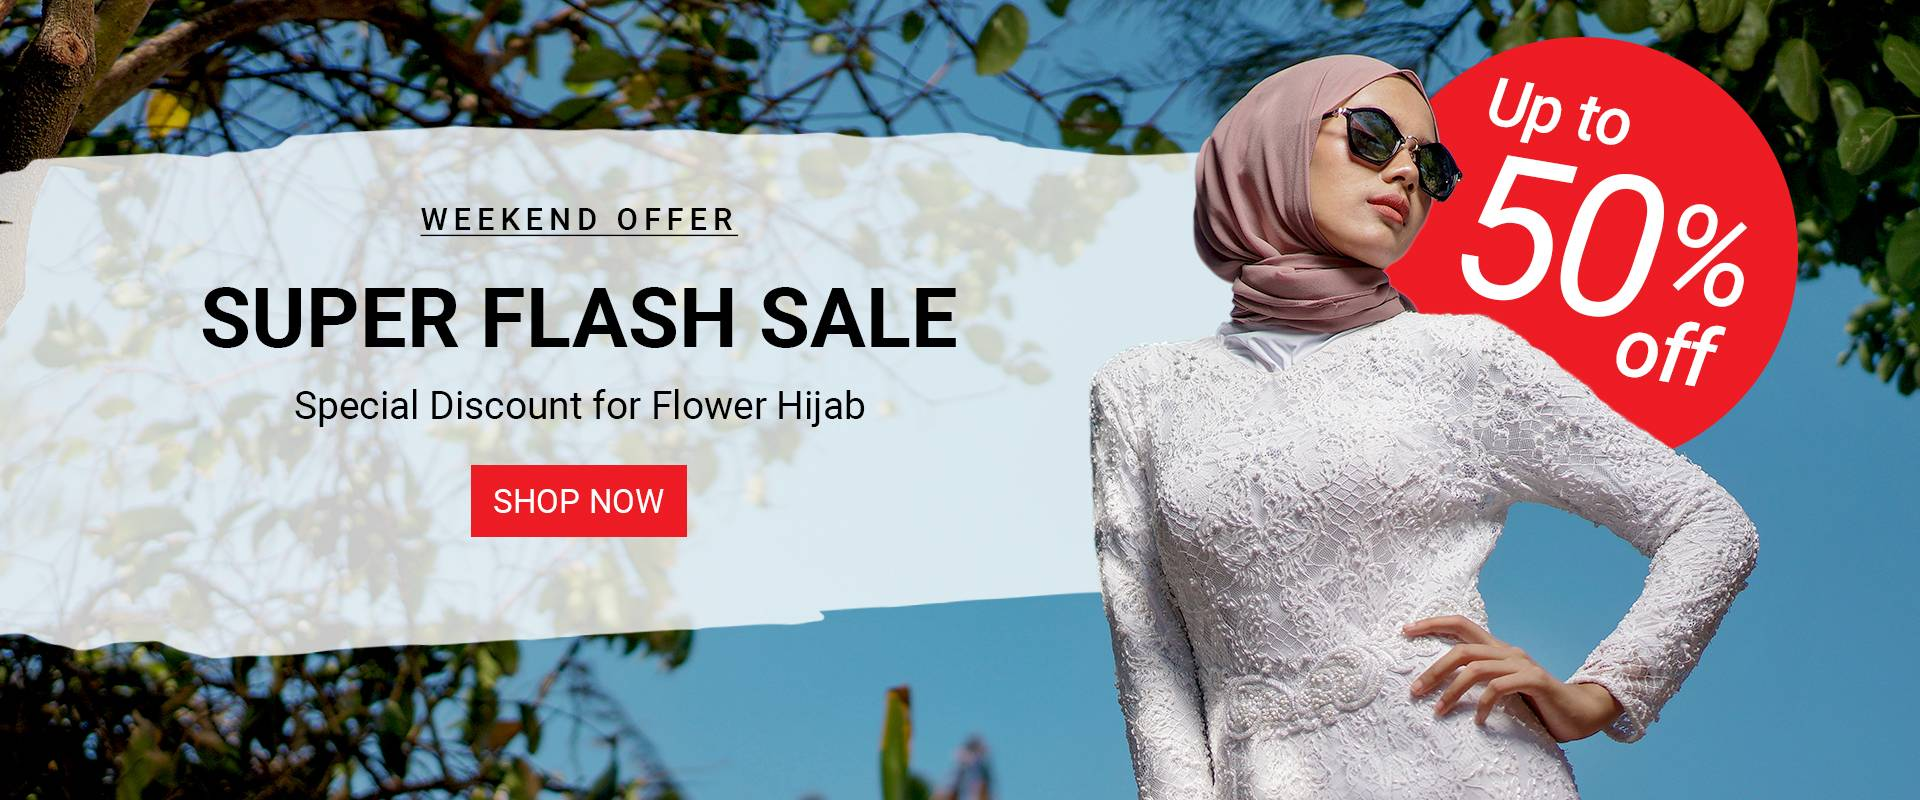 Super flash sale